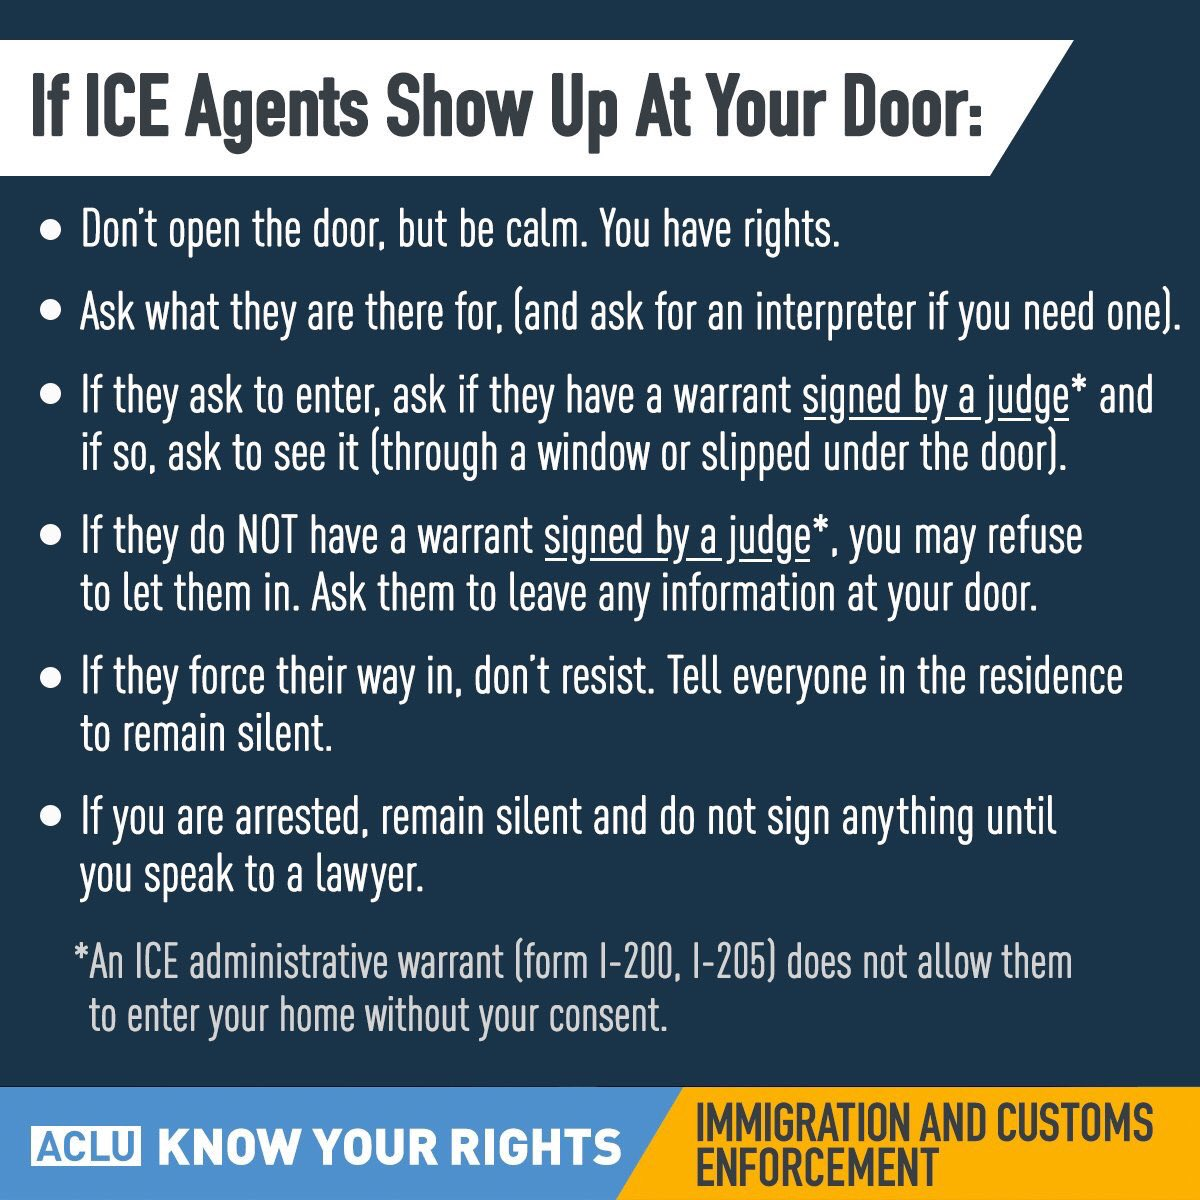 Multiple reports of ICE Agents near the 7 train in Queens. Thanks to the @ACLU for spreading this information. https://t.co/dplmoPHGud